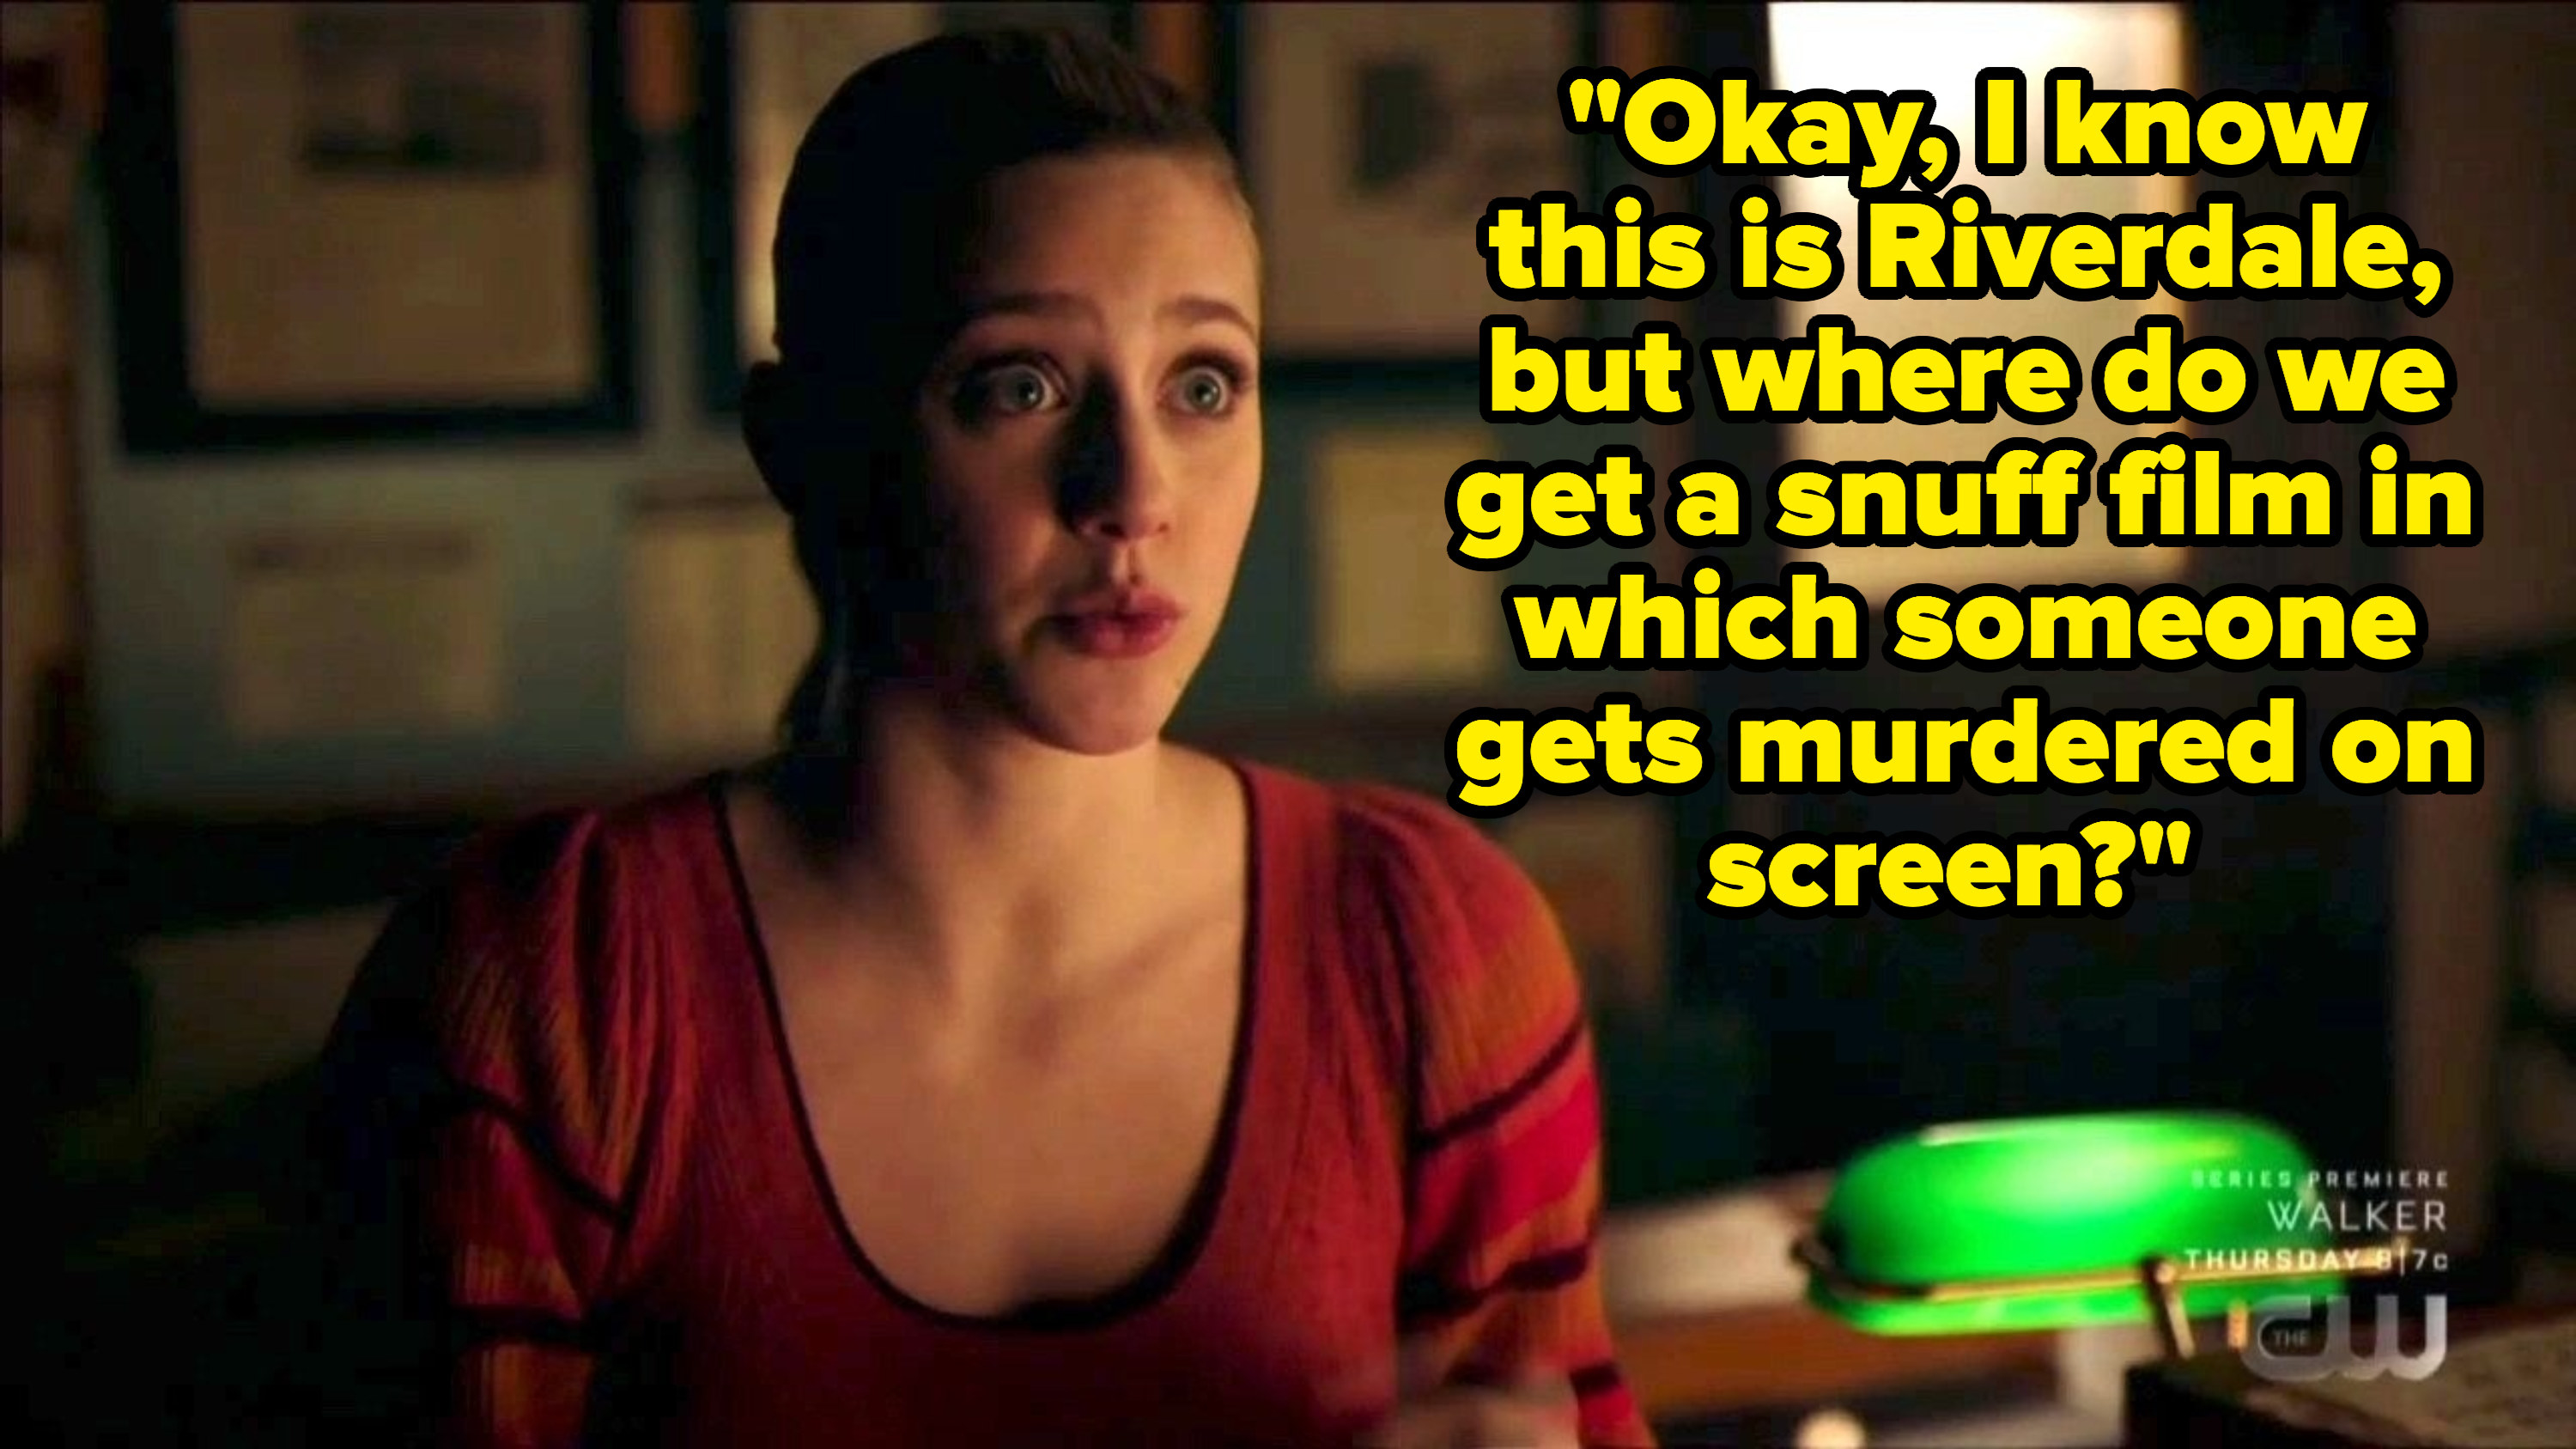 Betty asks where to get a snuff film in Riverdale